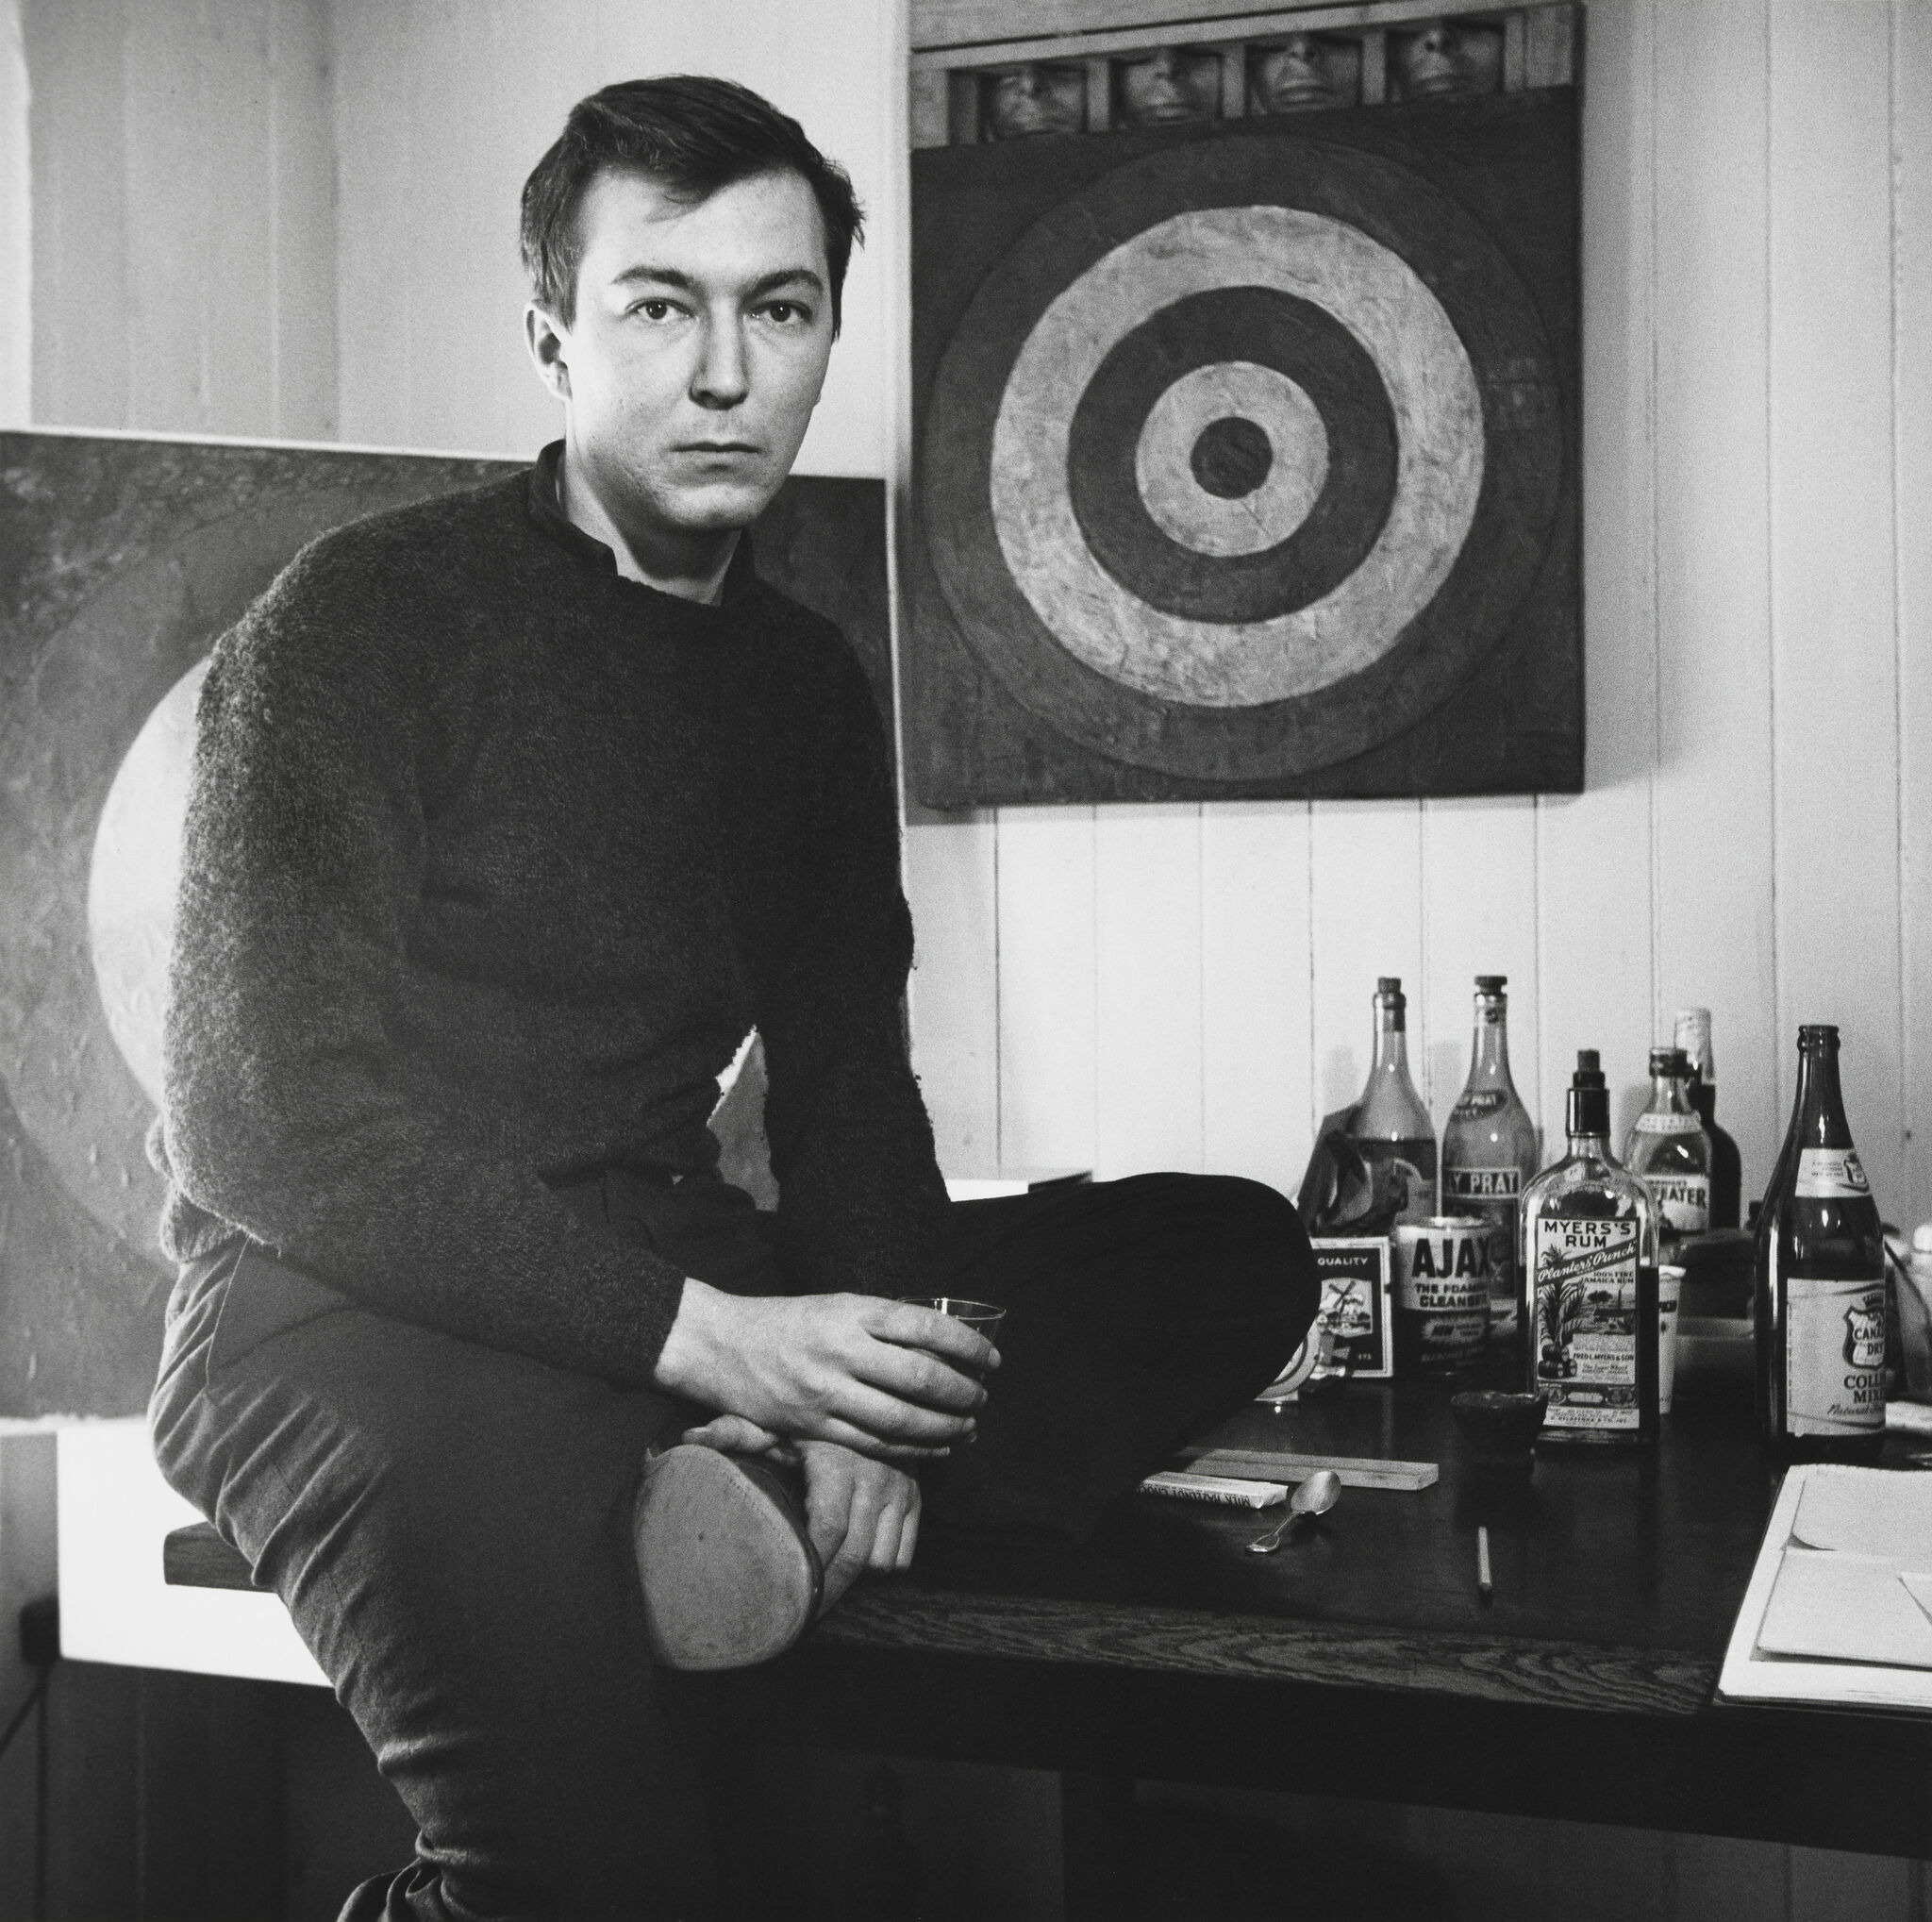 A young man sitting on the edge of a desk, looking at the viewer with a neutral expression, and holding a glass, against a backdrop of a painting on the wall and a collection of liquor bottles.